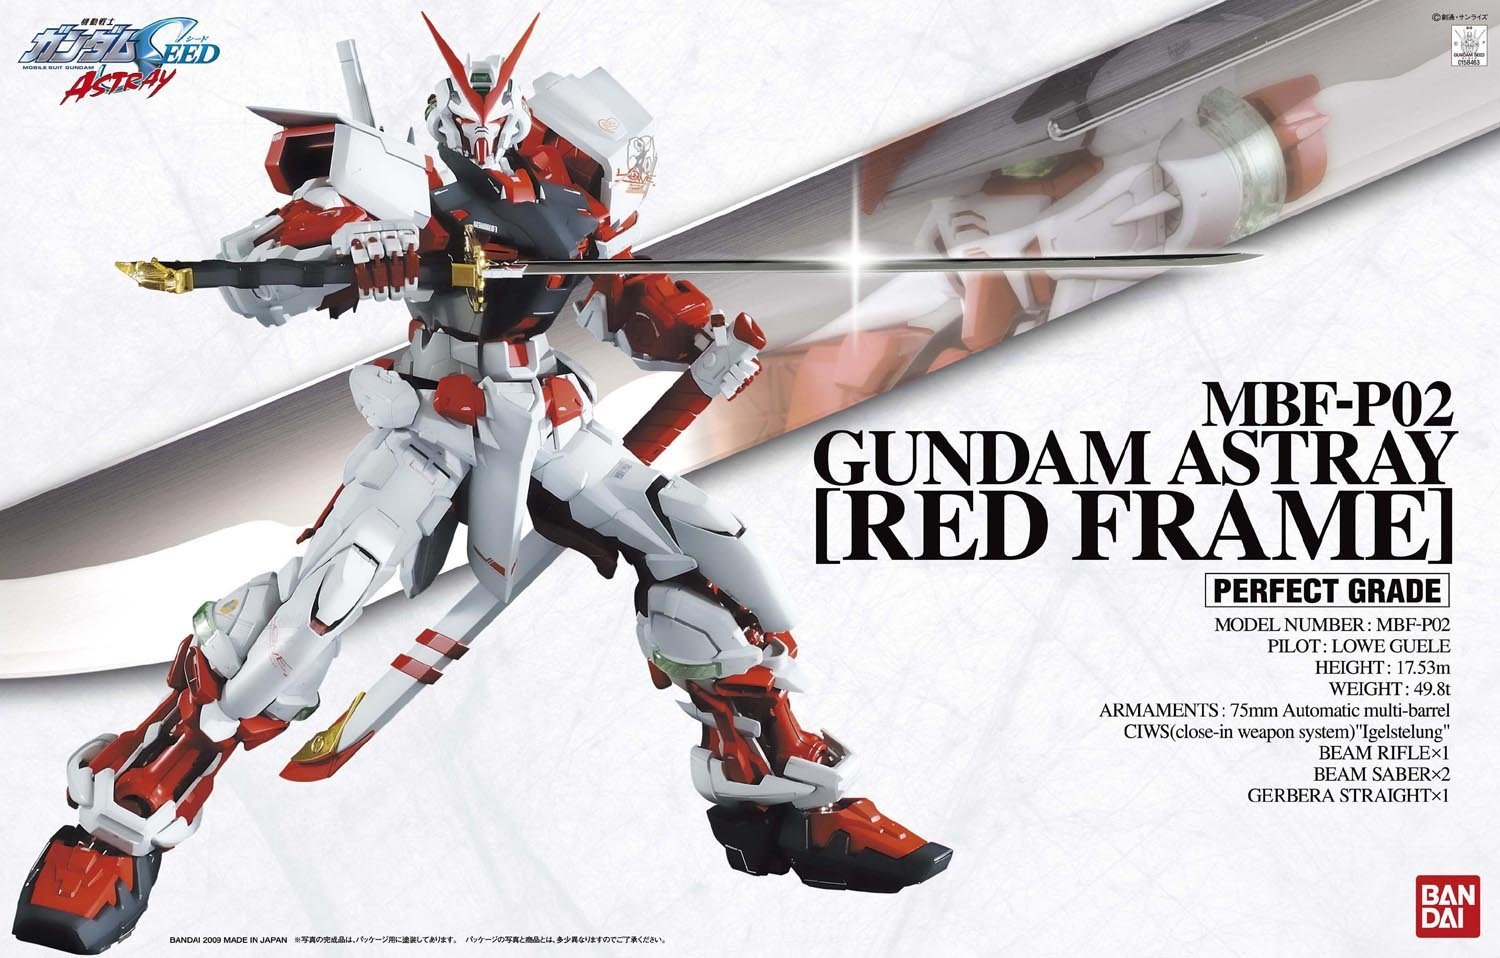 Click here to buy Bandai Hobby Gundam Seed Astray Red Frame 1 60 Perfect Grade PG Model Kit by Bandai Hobby.